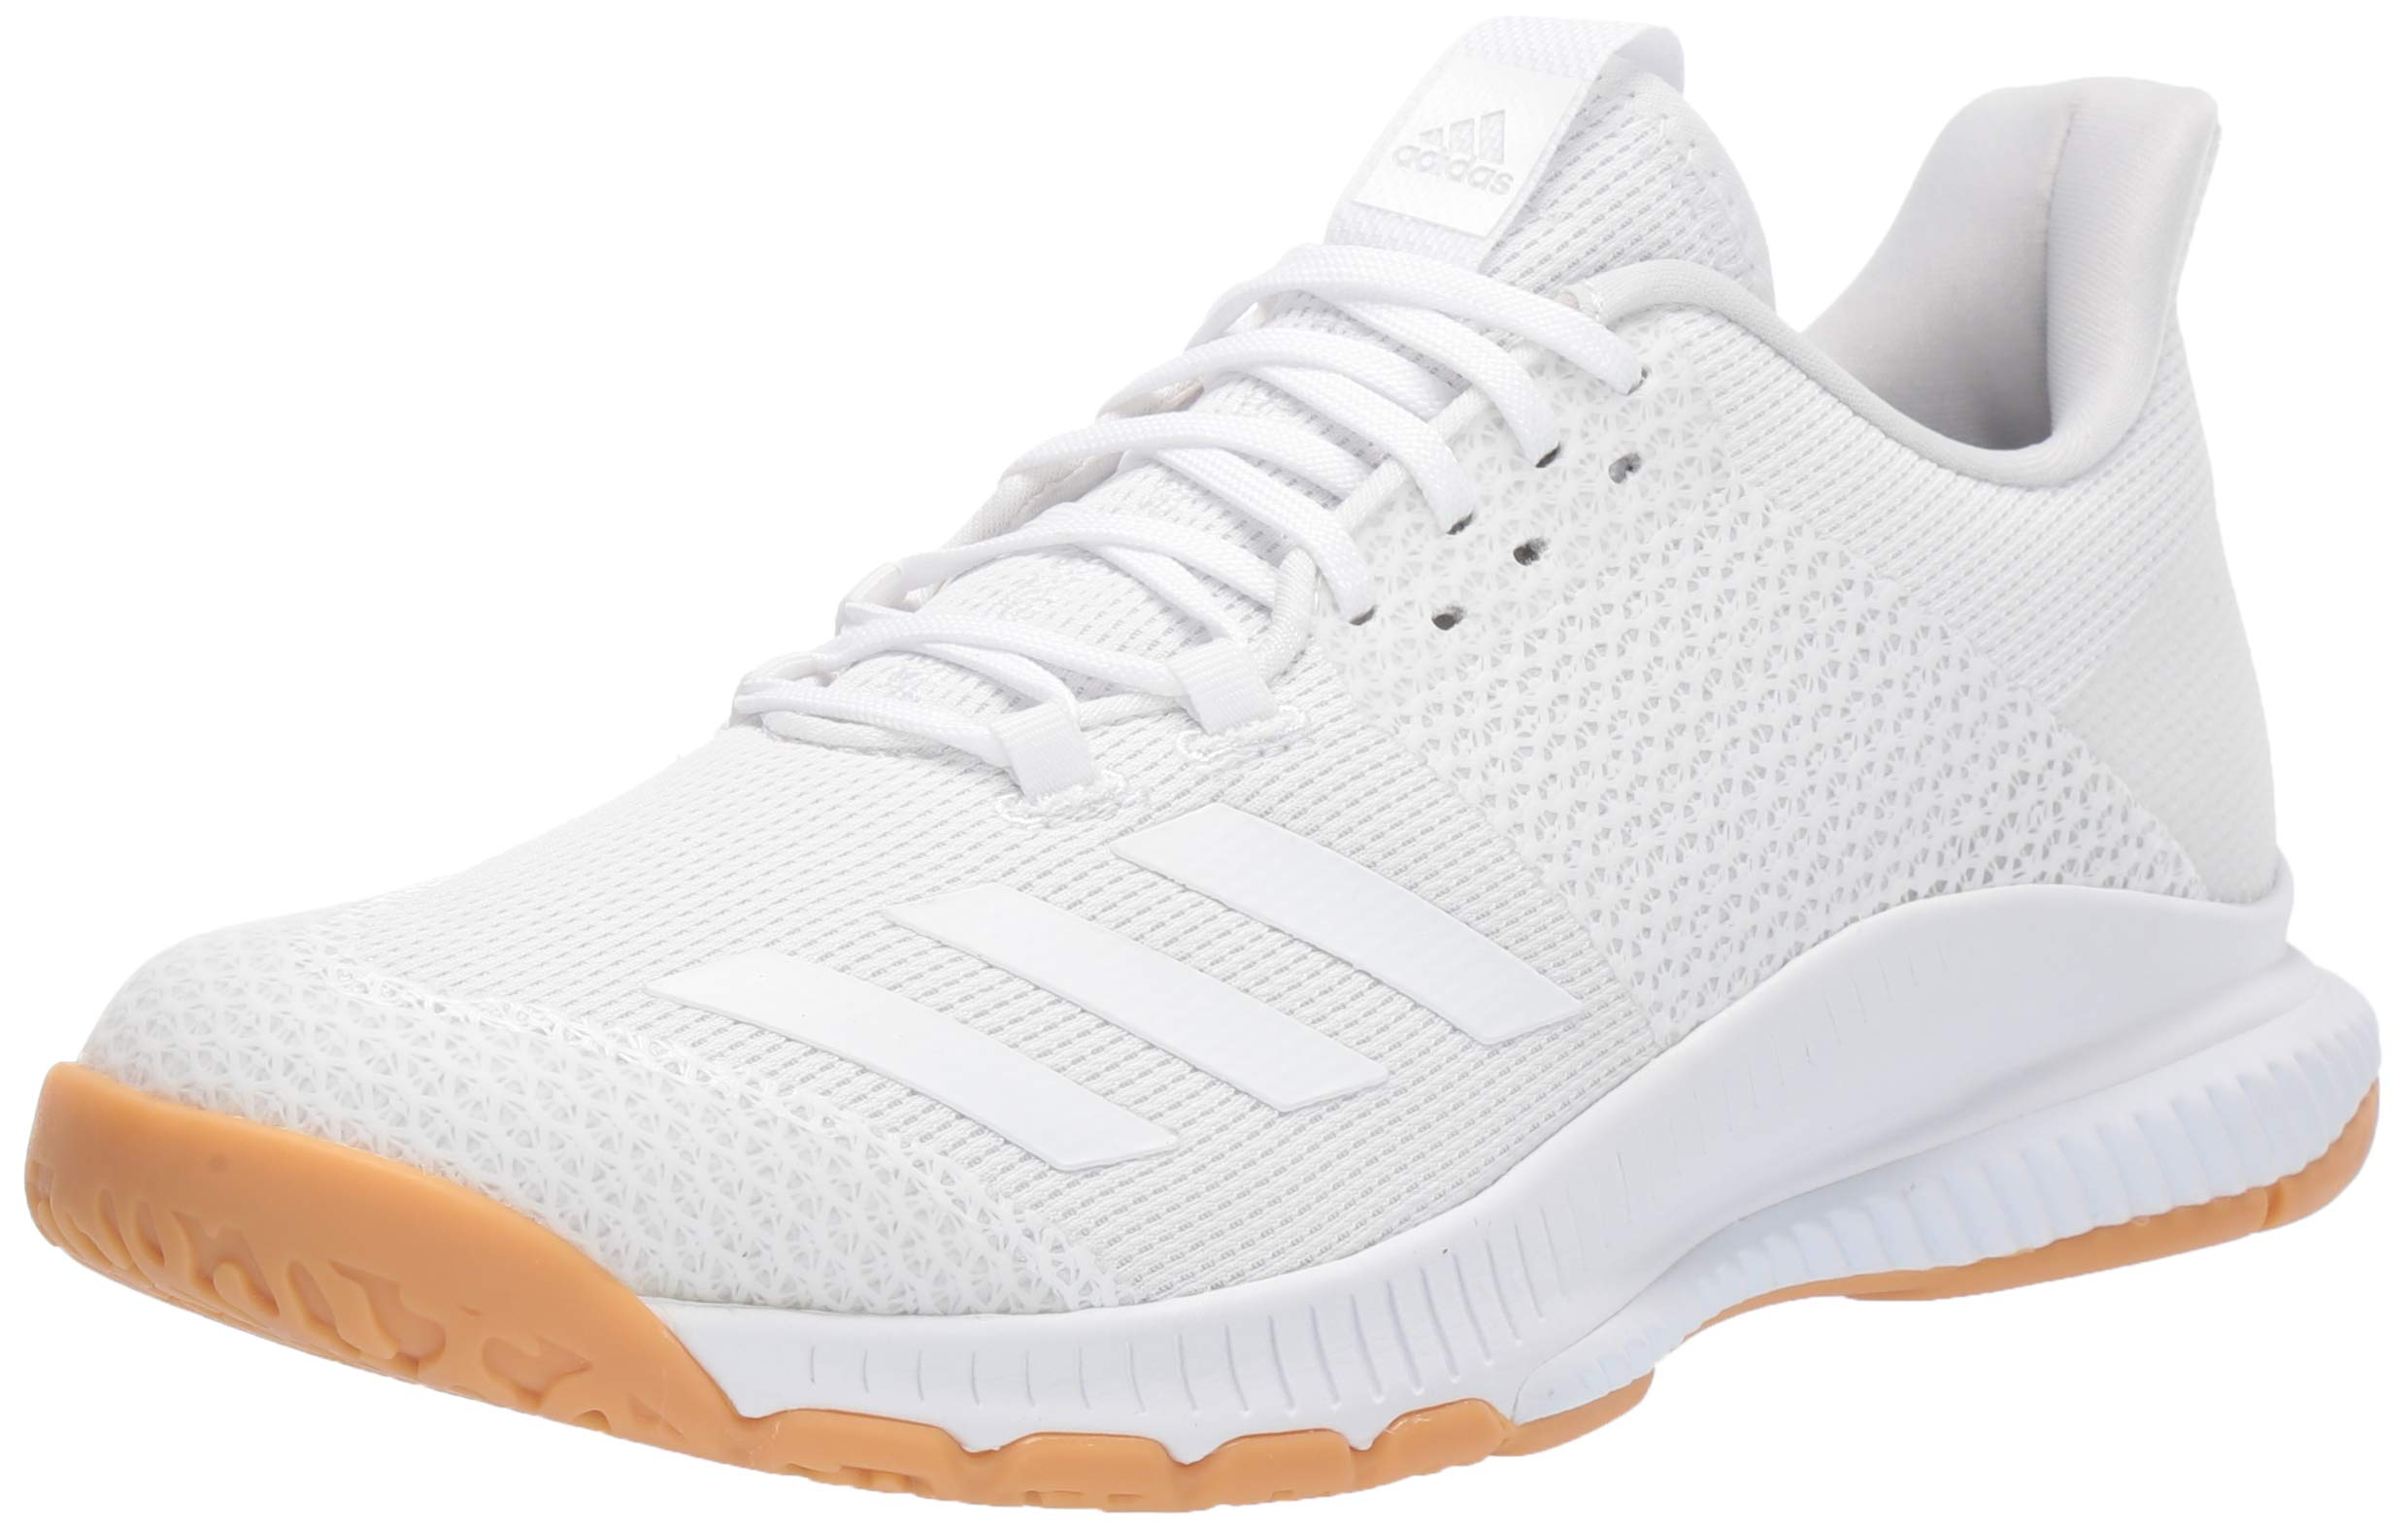 adidas Women's Crazyflight Bounce 3 Volleyball Shoe, White/Gum, 5 M US